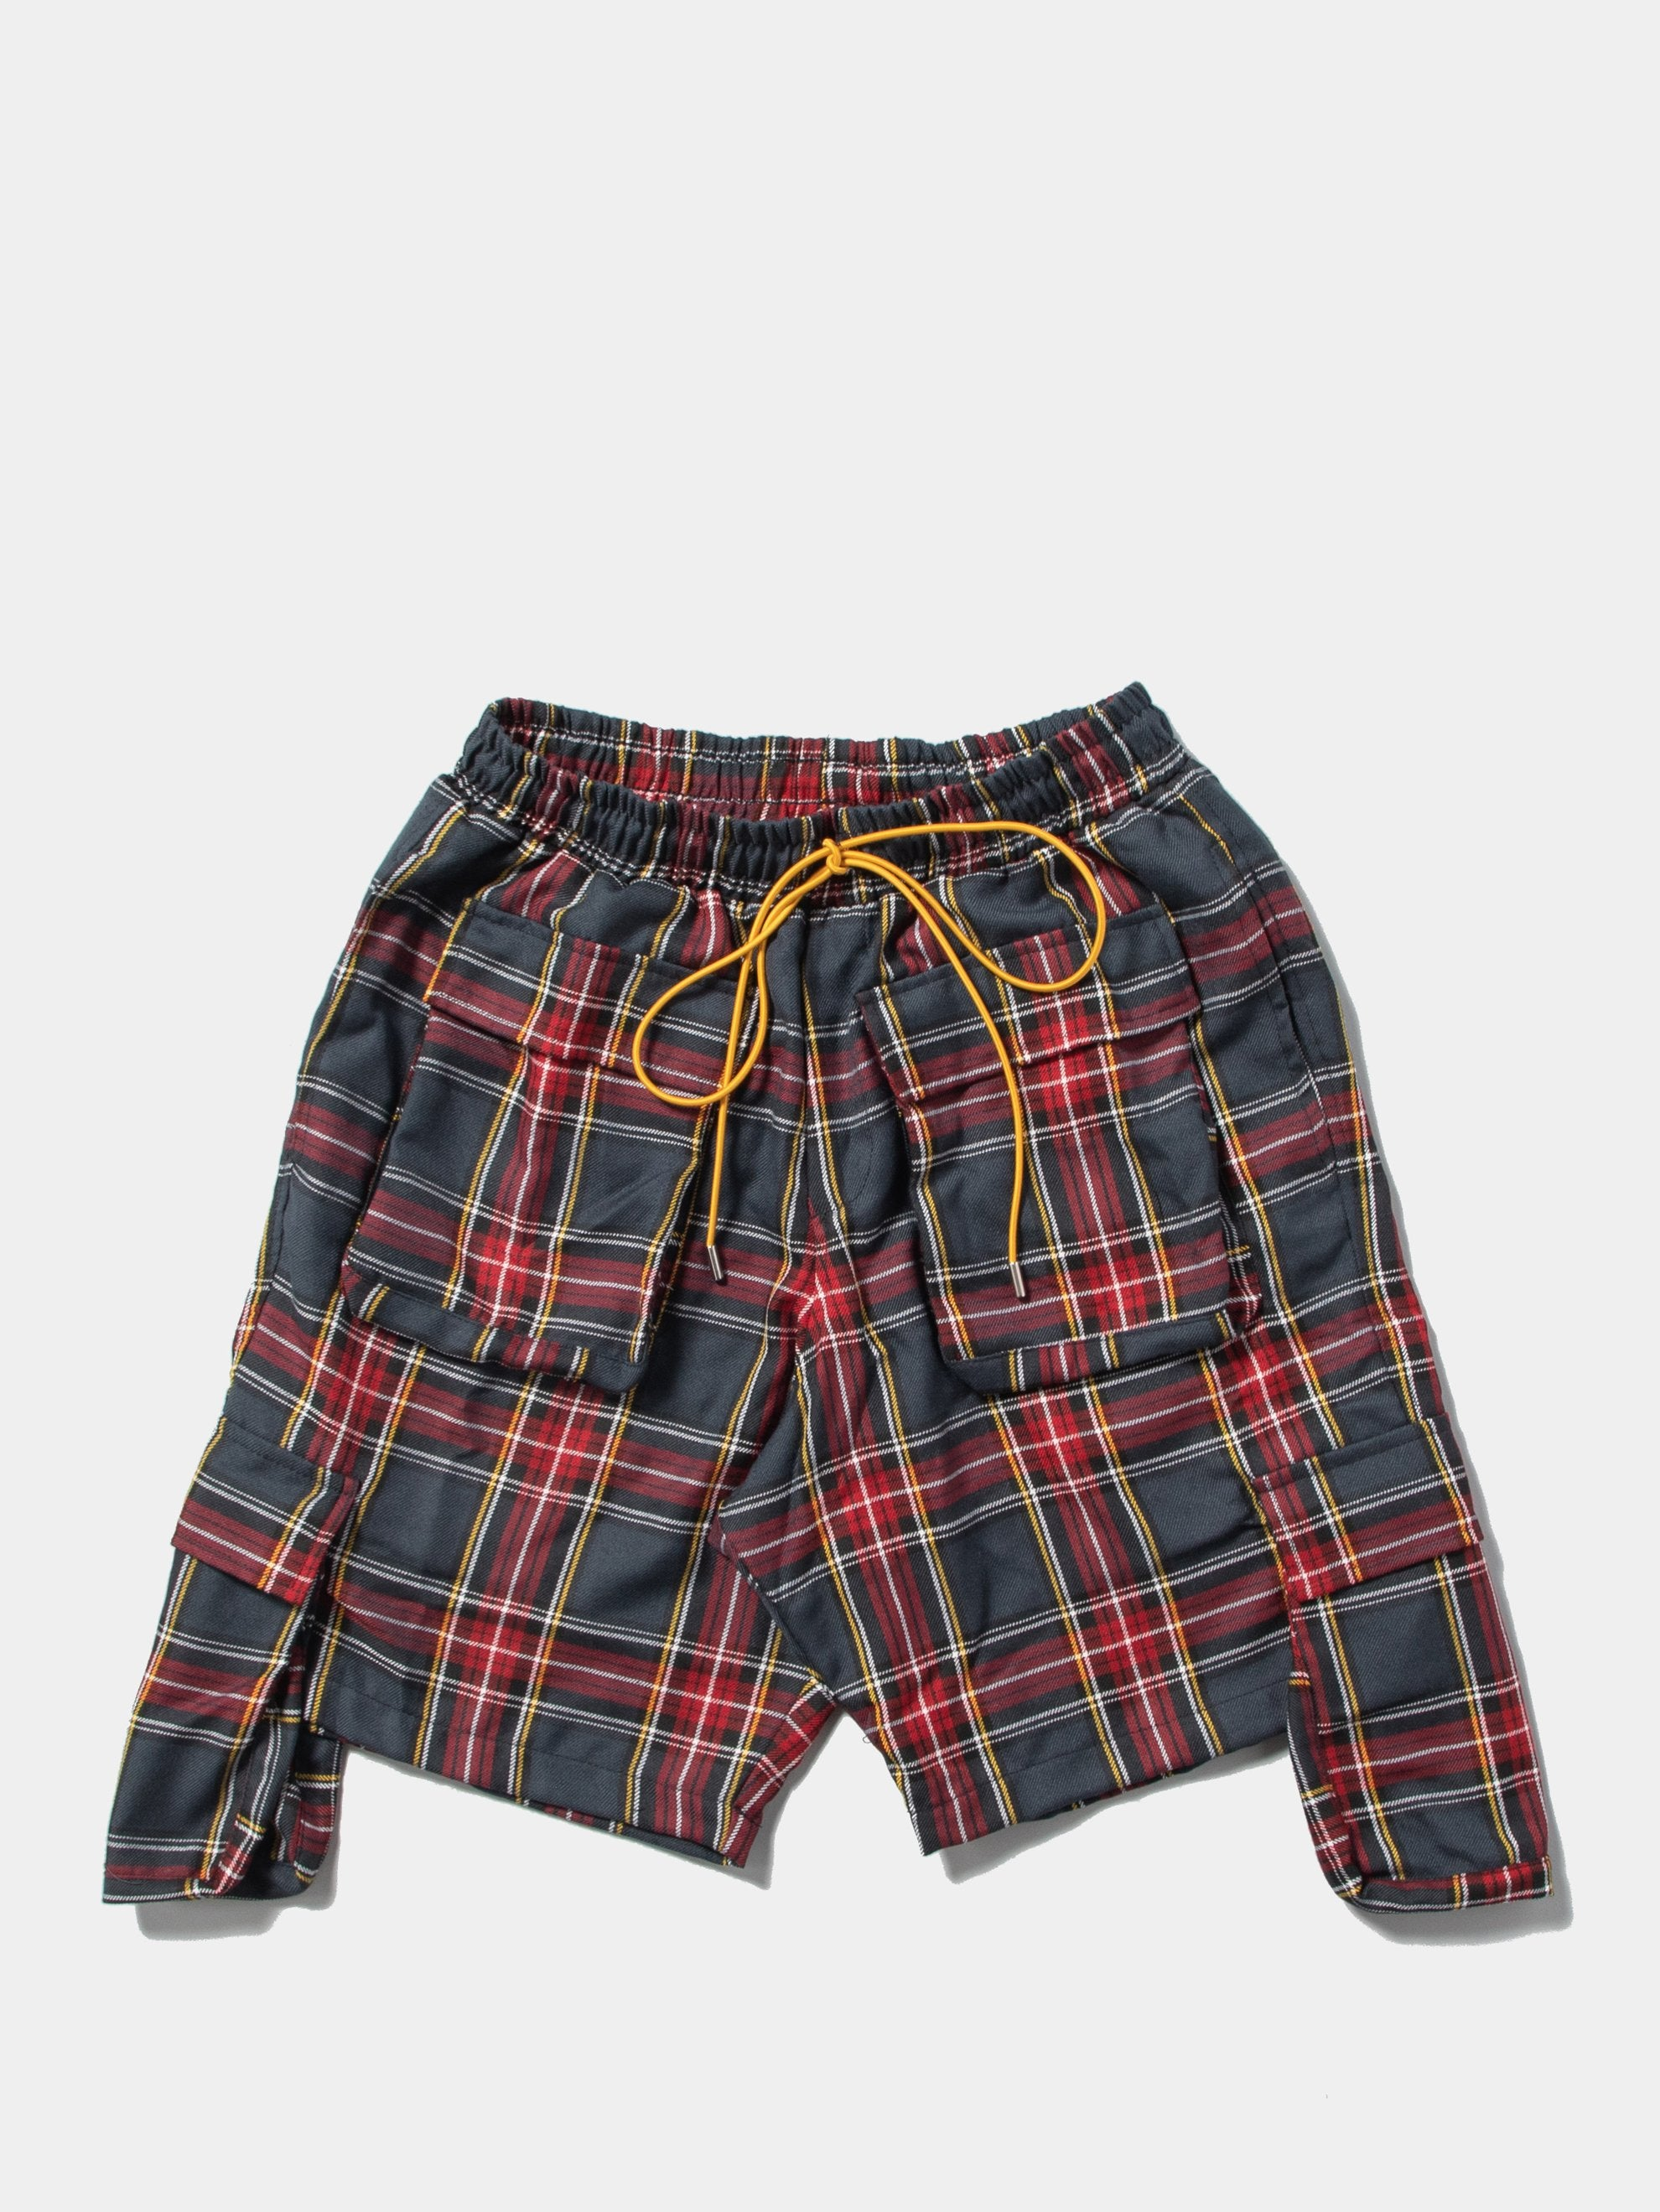 Red / Grey Plaid Cargo Shorts 1